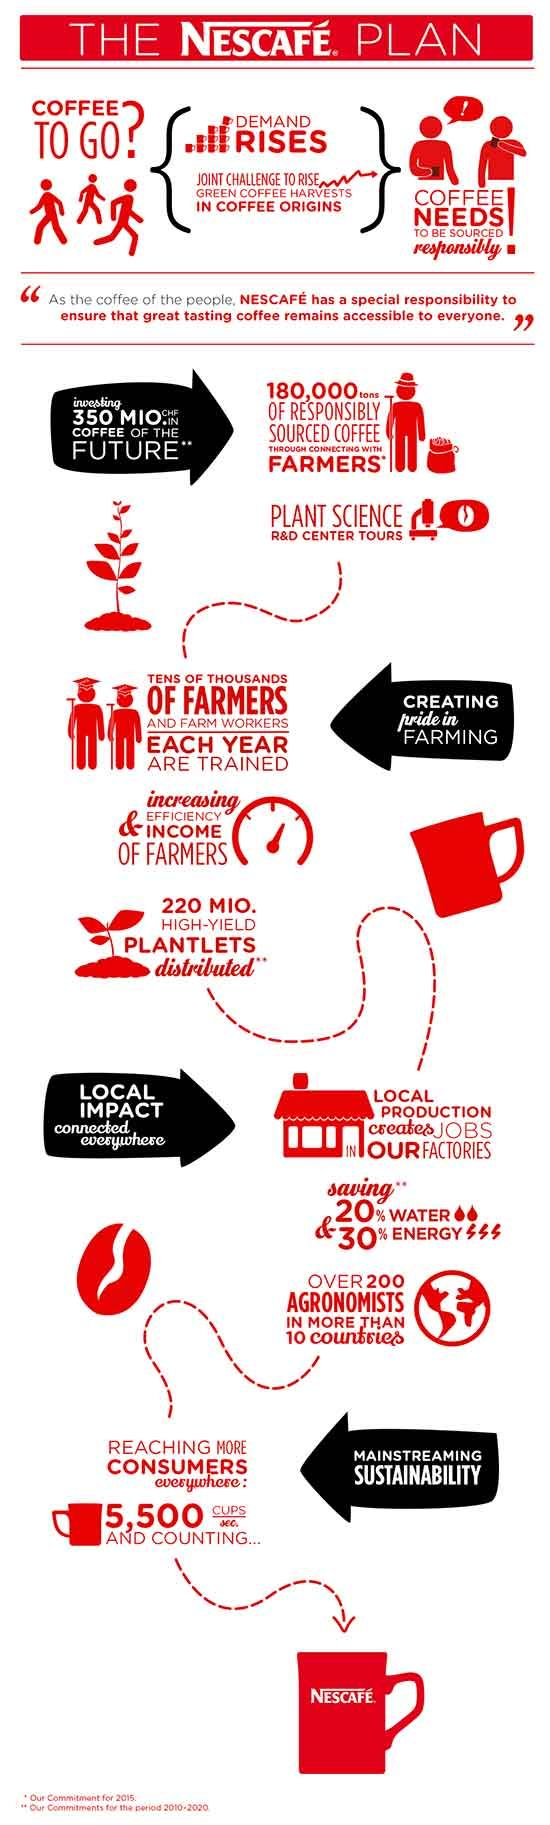 The Nescafé Plan is a global initiative launched to support responsible farming, production and consumption.